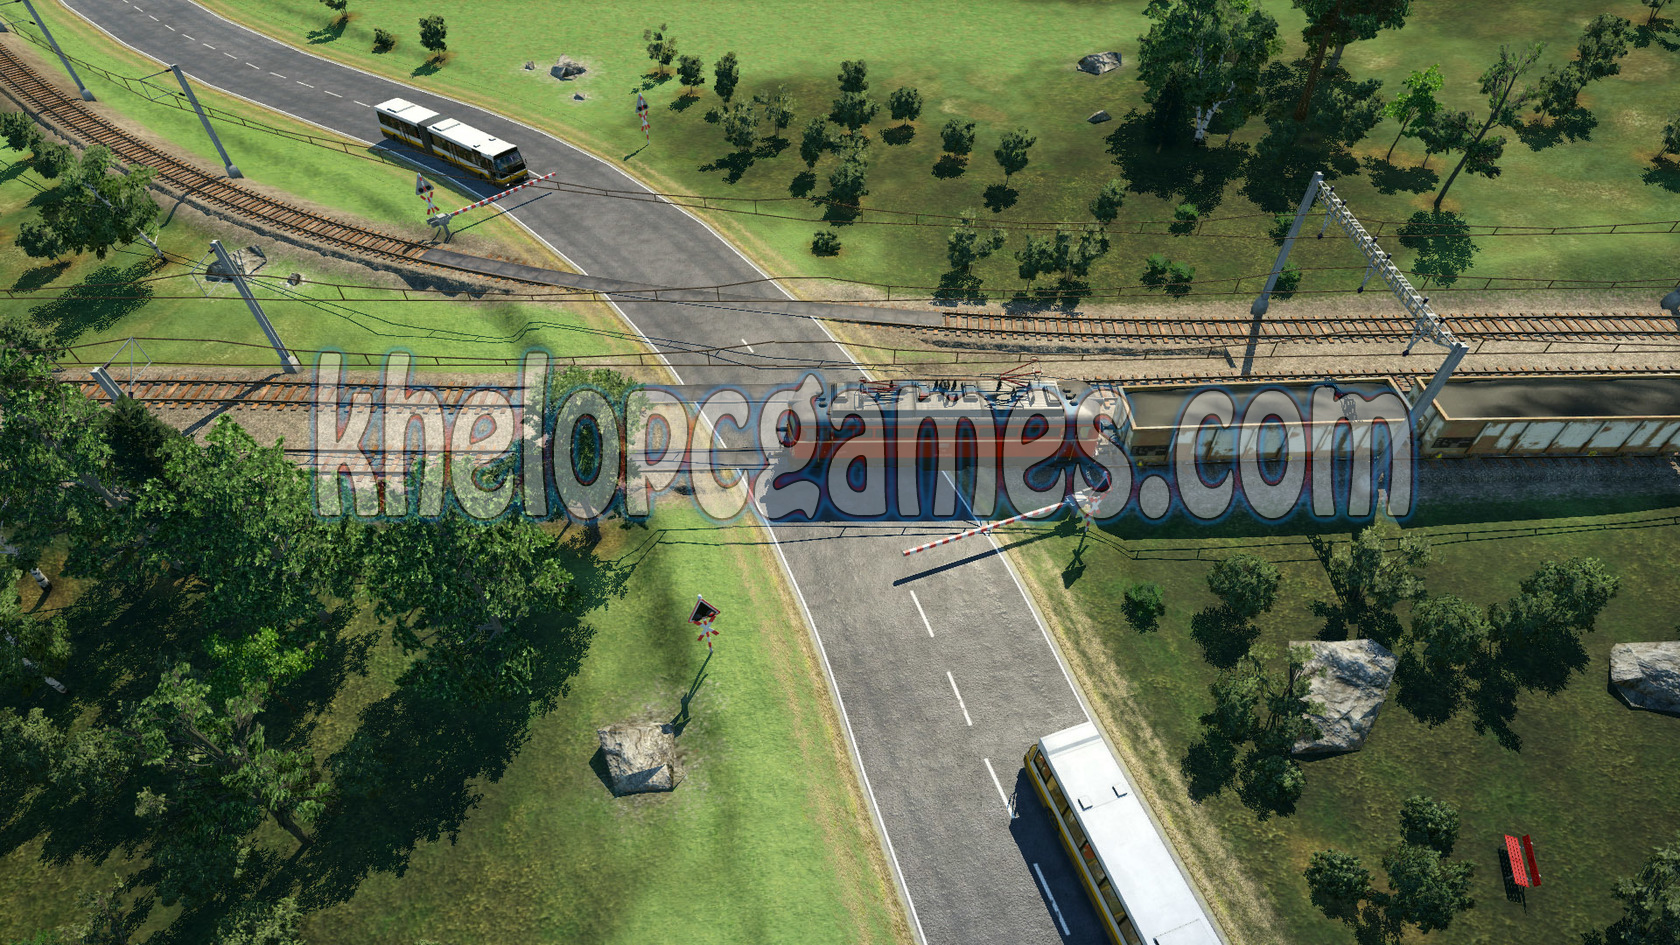 Transport Fever Free Download (Build 18381) (Complete)